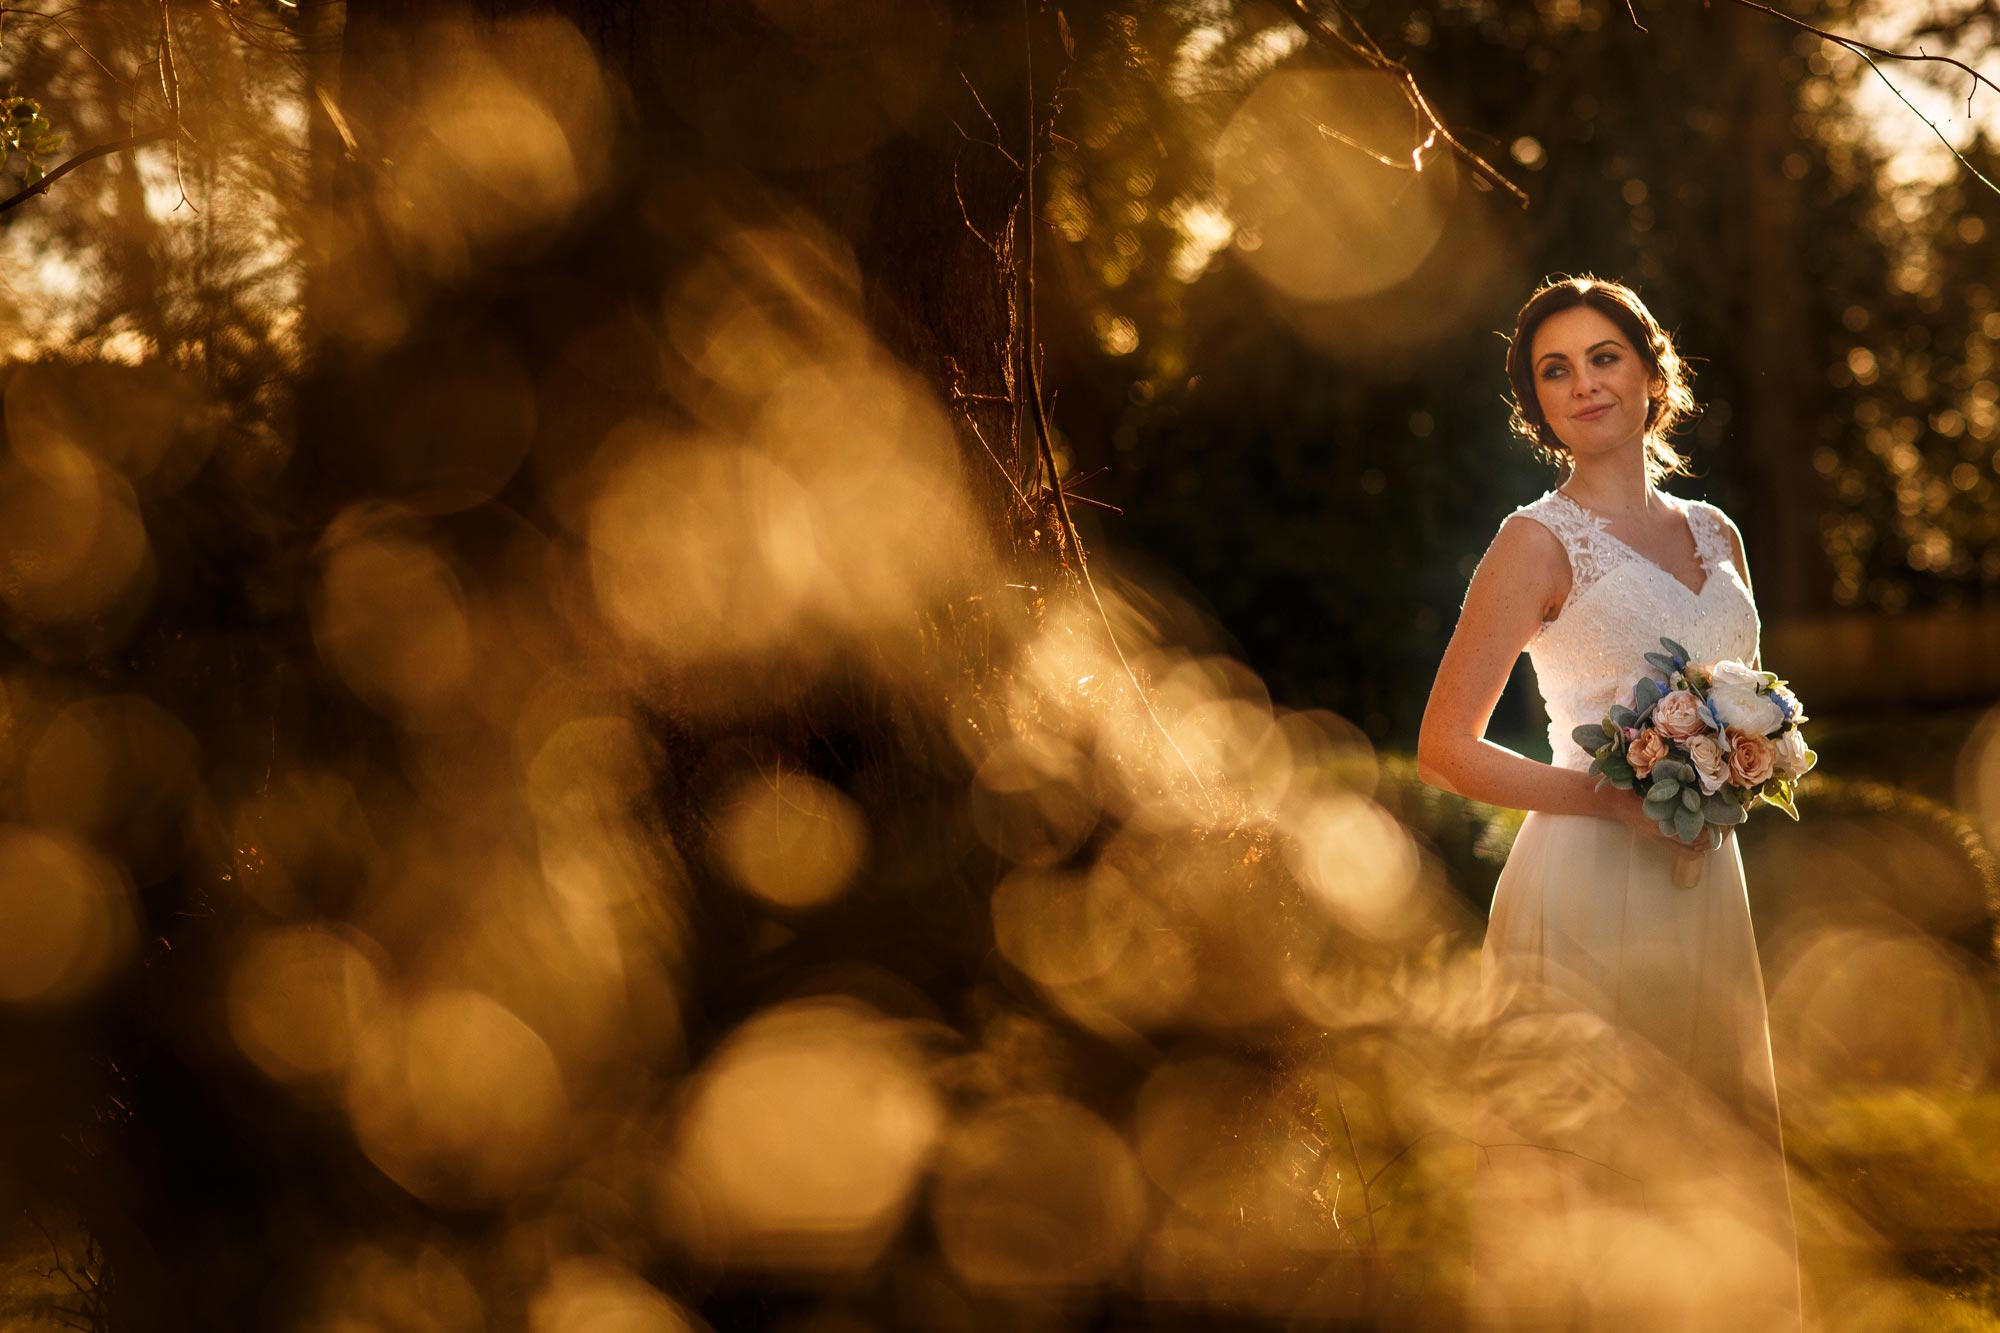 Creative wedding photograph of a bride with lots of bokeh in the foreground